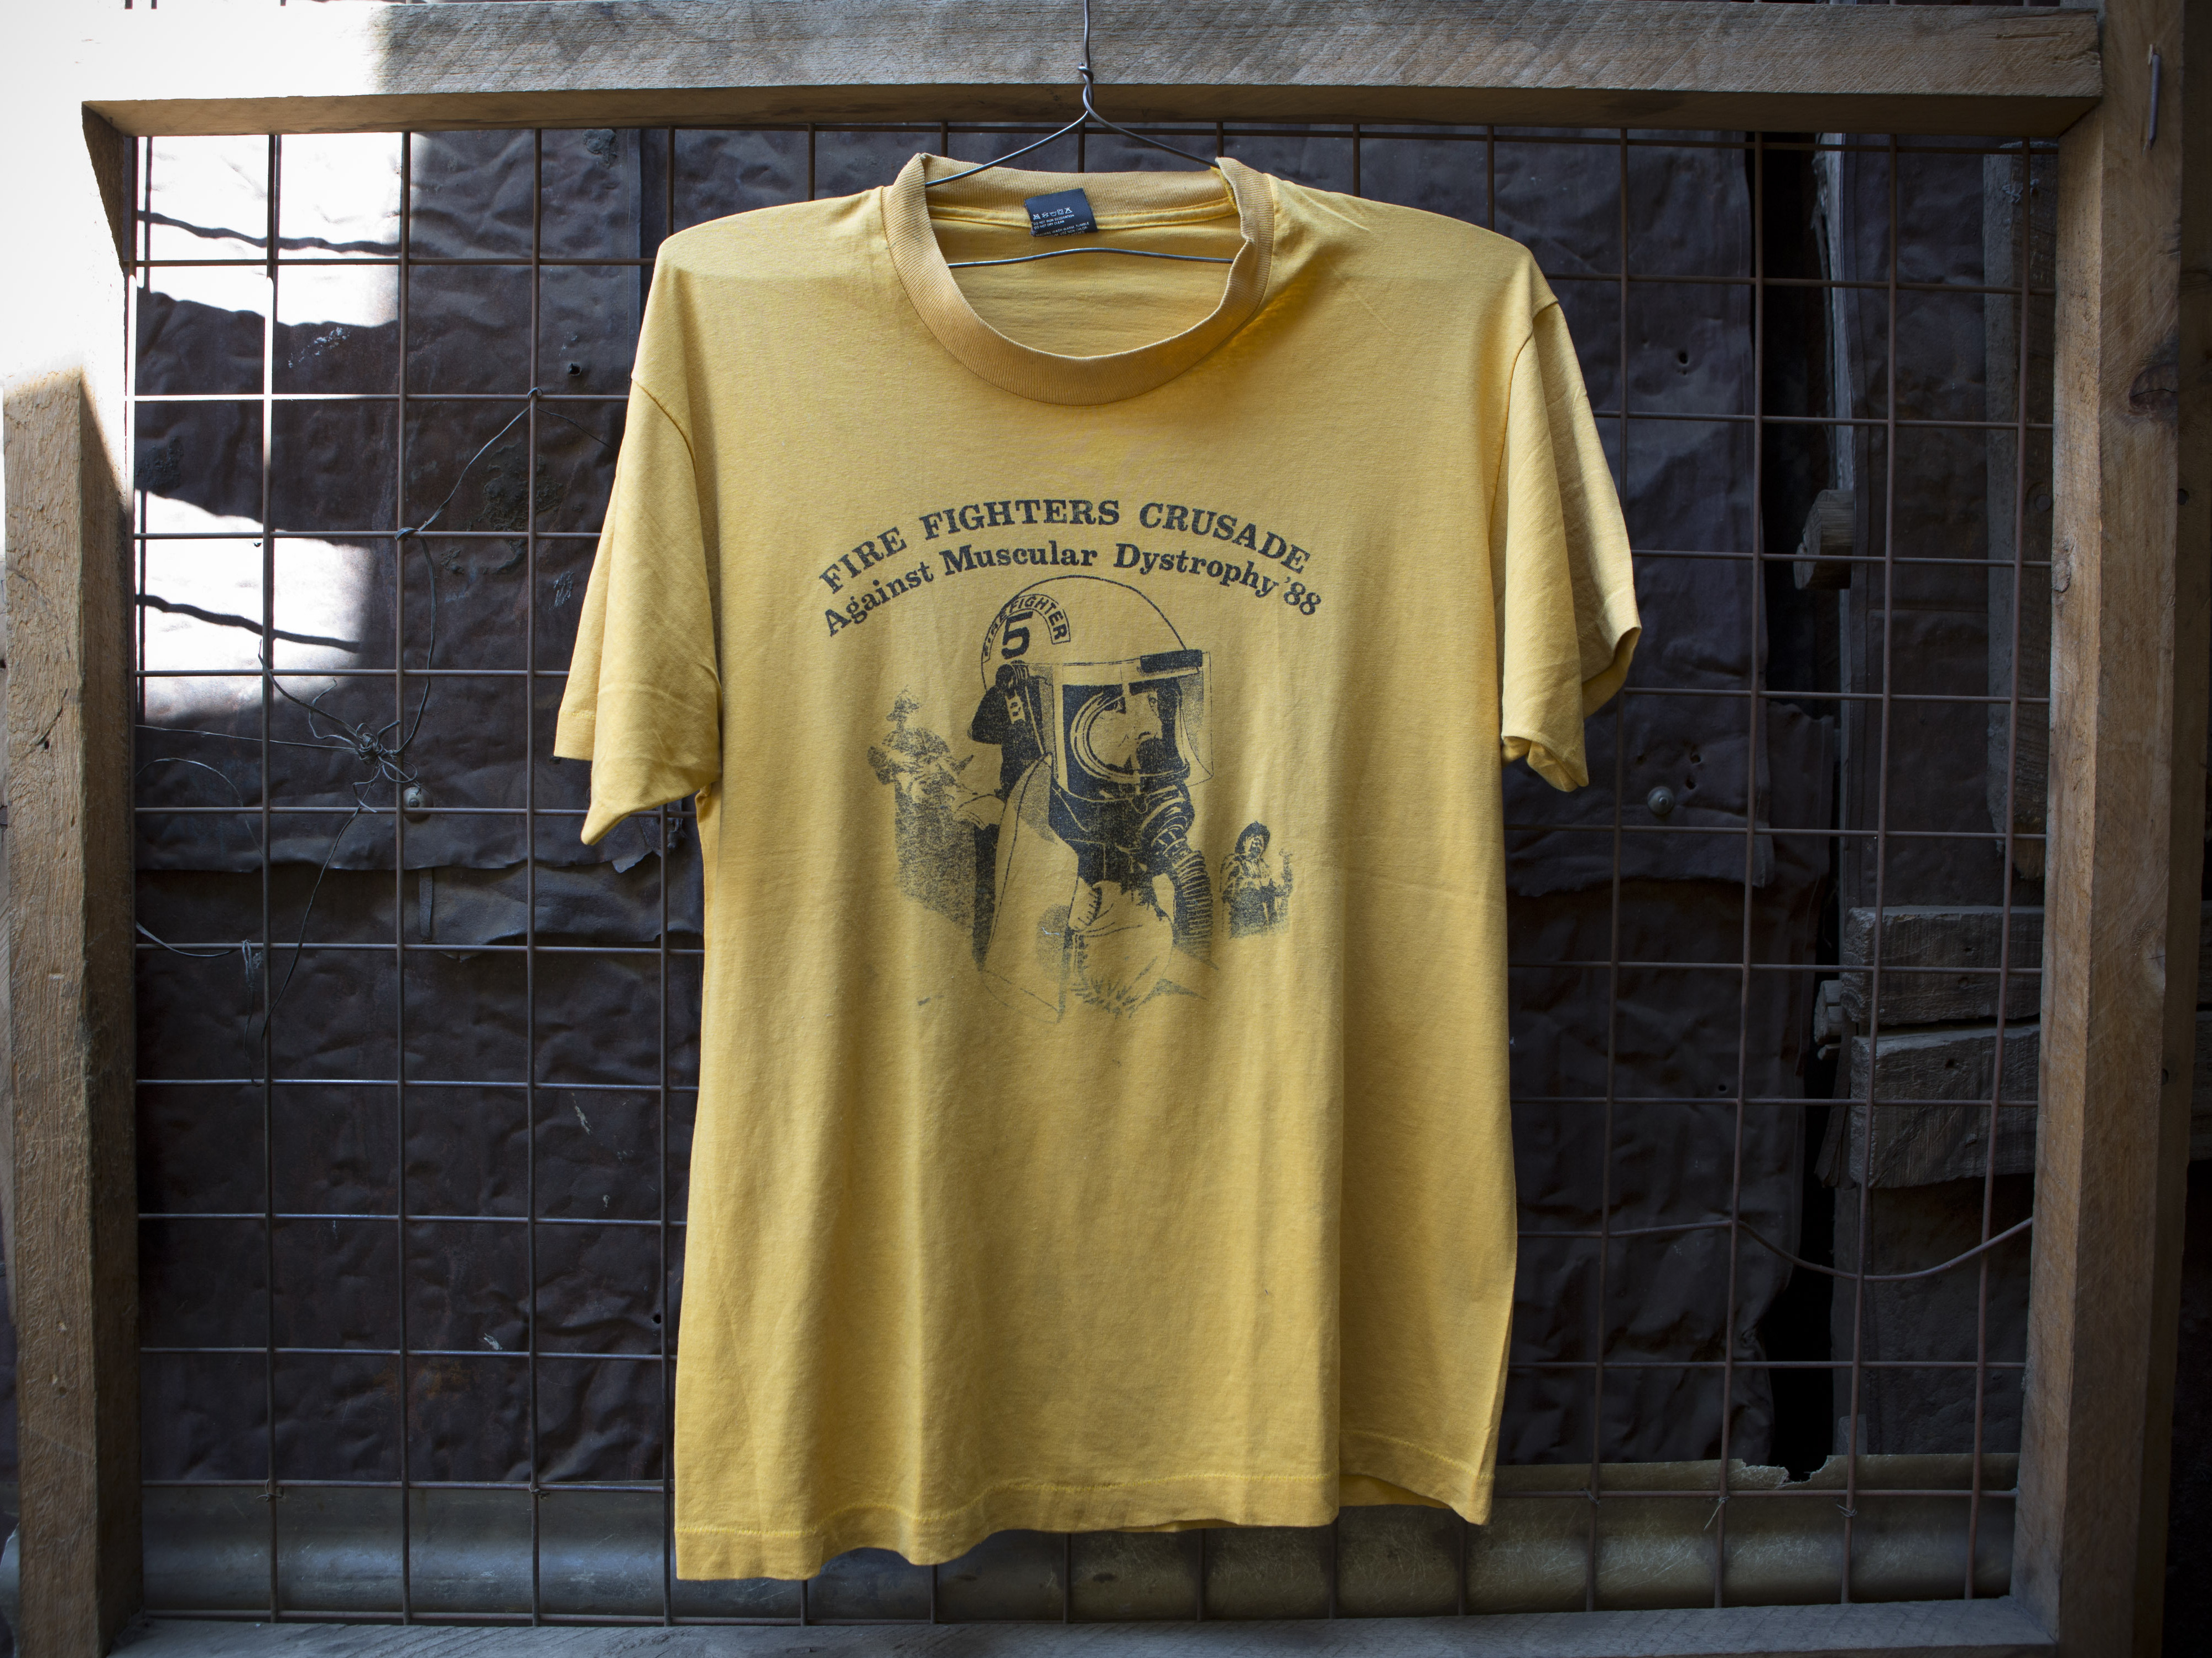 "A T-shirt for sale at Gikombo Market in Nairobi, Kenya. The shirt reads ""Fire Fighters Crusade Against Muscular Dystrophy '88."""